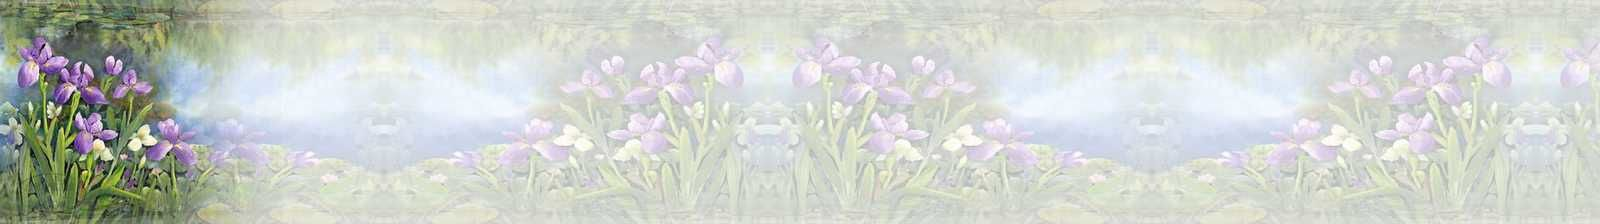 Iris Incredimail &amp&#x3B; Papier A4 h l &amp&#x3B; outlook &amp&#x3B; enveloppe &amp&#x3B; 2 cartes A5 &amp&#x3B; signets 3 langues     irisbythepond_05_37